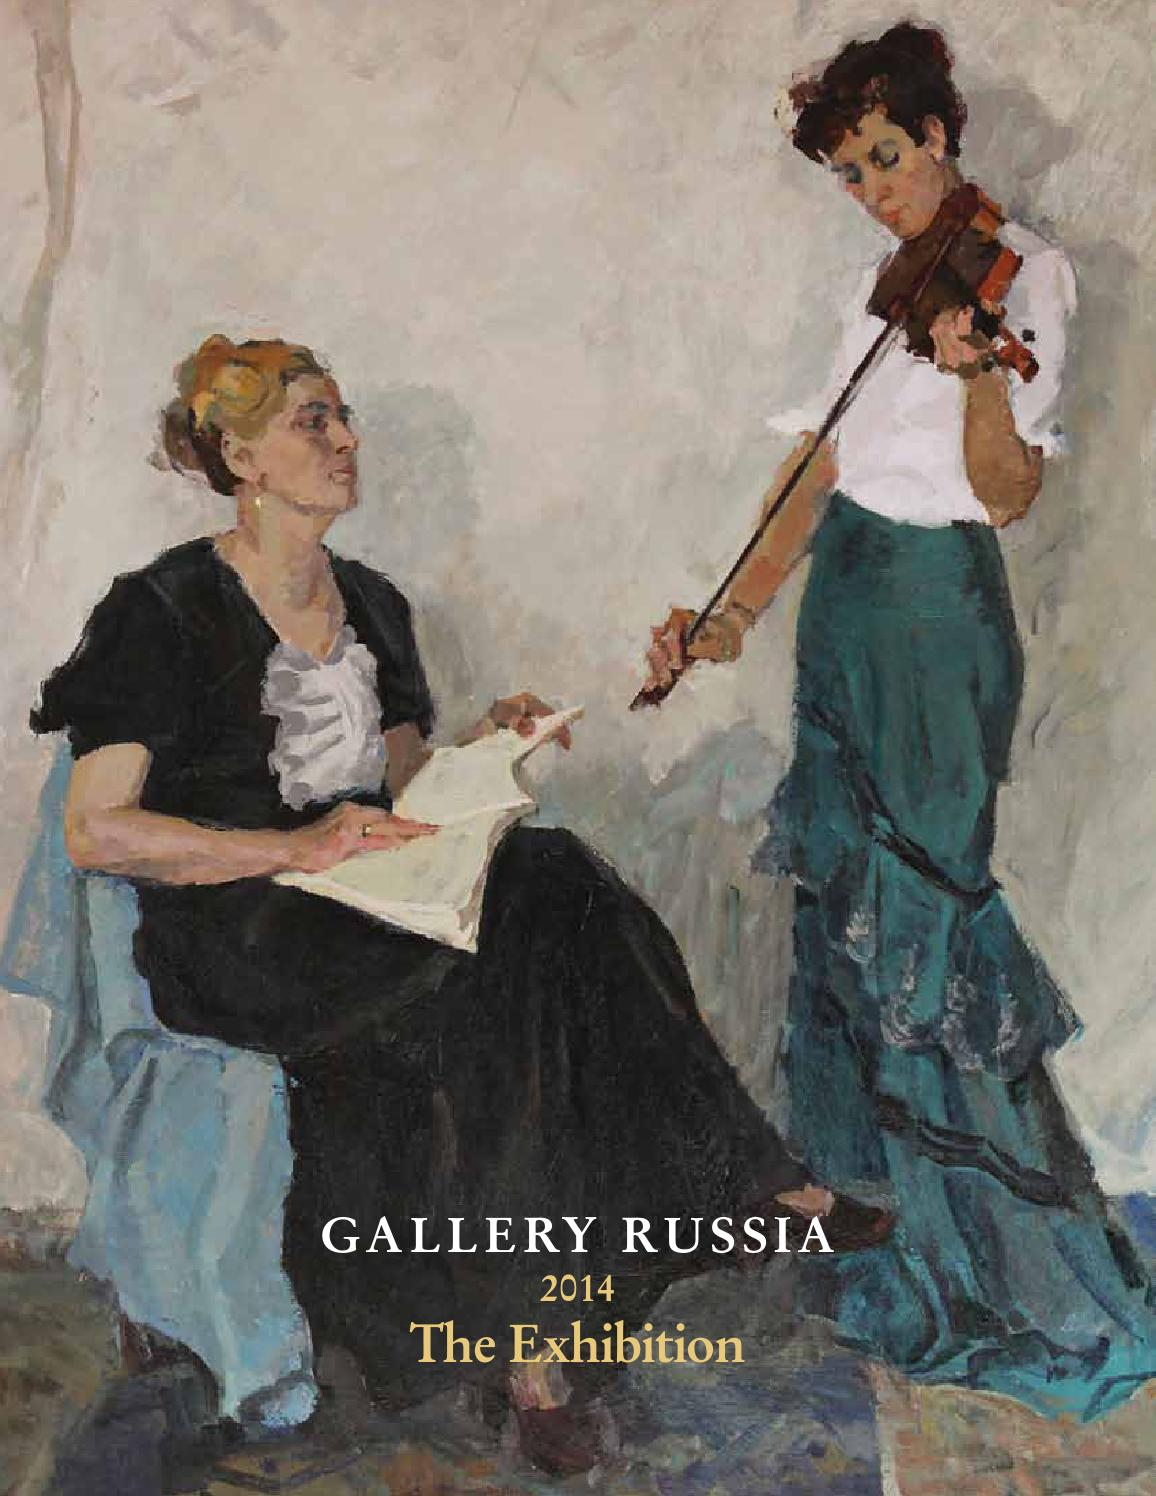 Gallery russia 2014 exhibition by Gallery Russia - issuu